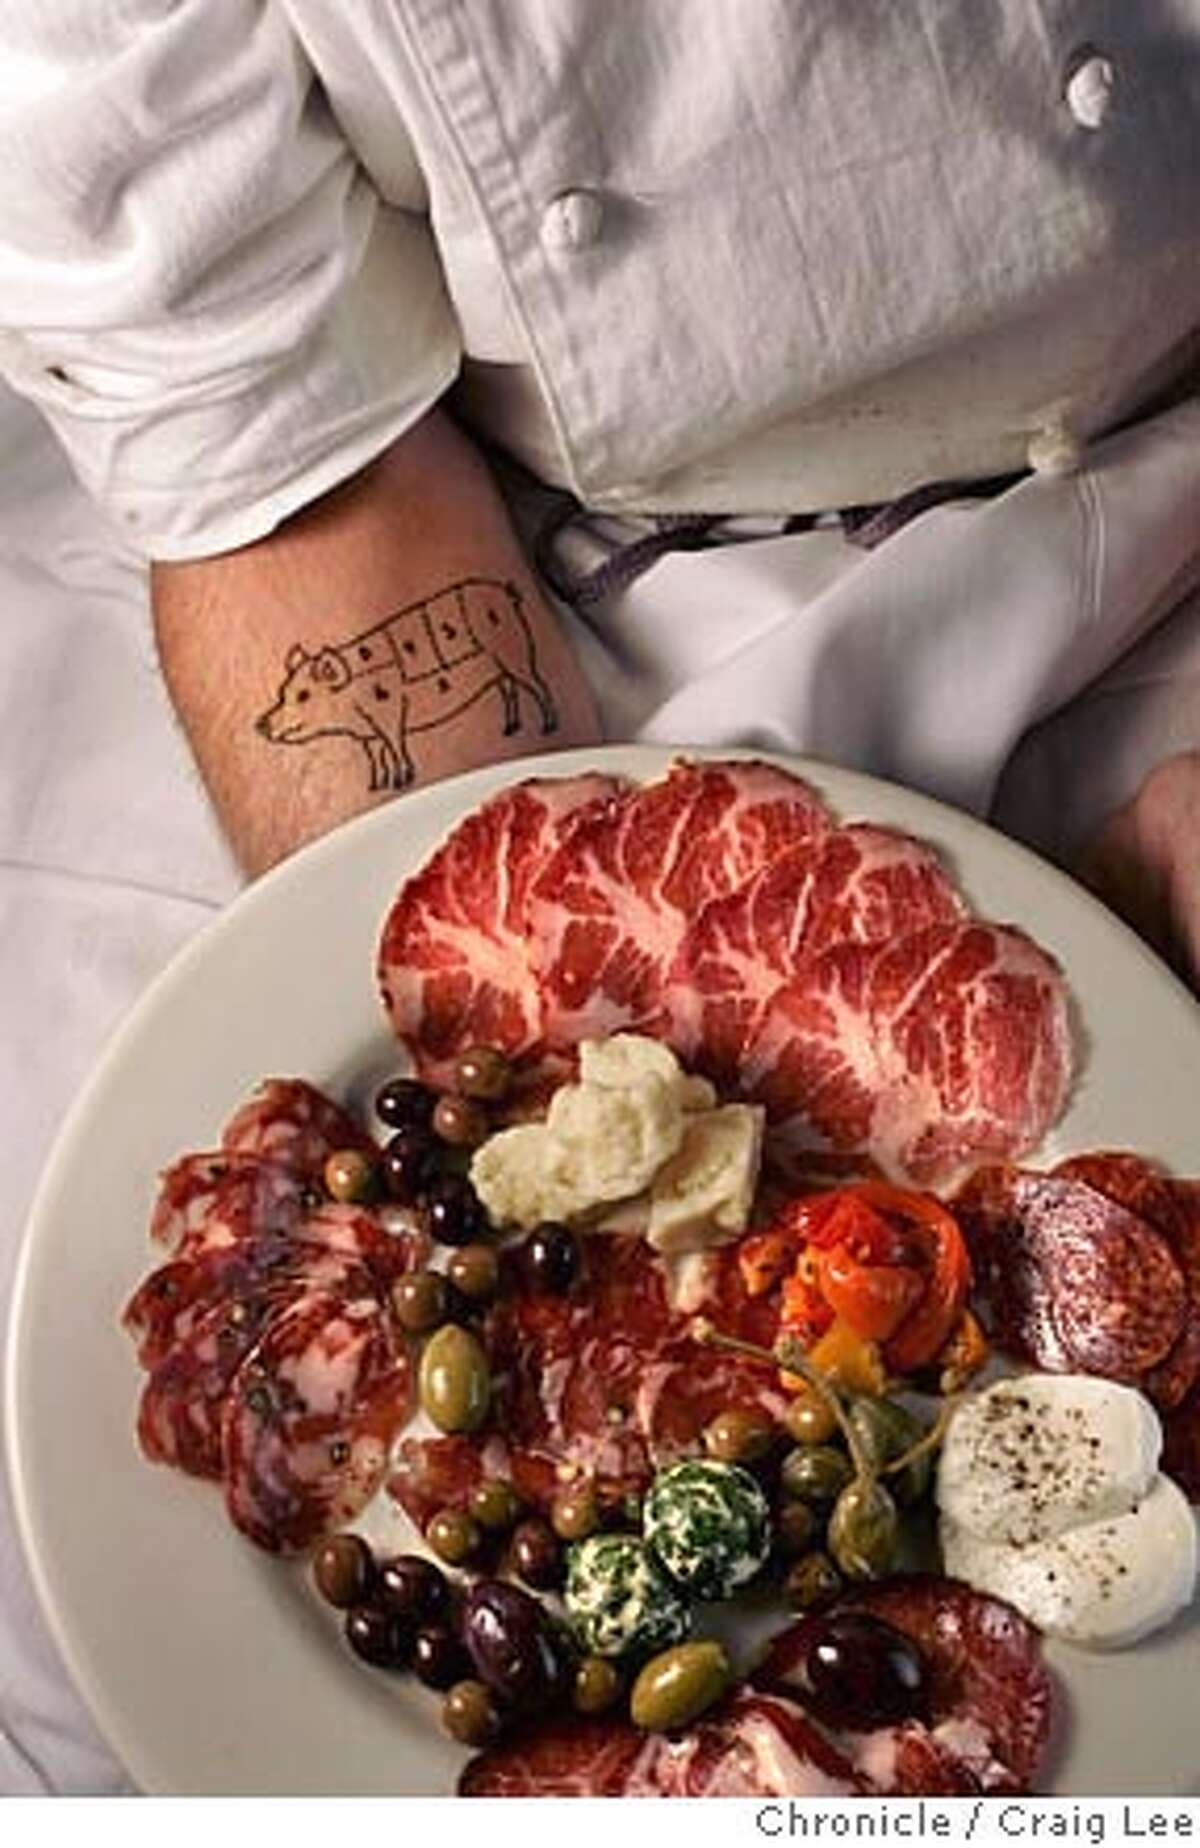 John Stewart, a chef who makes salumi and serves it at his restaurants, Bovolo in Healdsburg and Zazu in Santa Rosa. The photo was taken at his Bovolo restaurant. Photo of his tattoo of a pig on his arm and a plate of his salumi. Event on 8/26/05 in Healdsburg. Craig Lee / The Chronicle